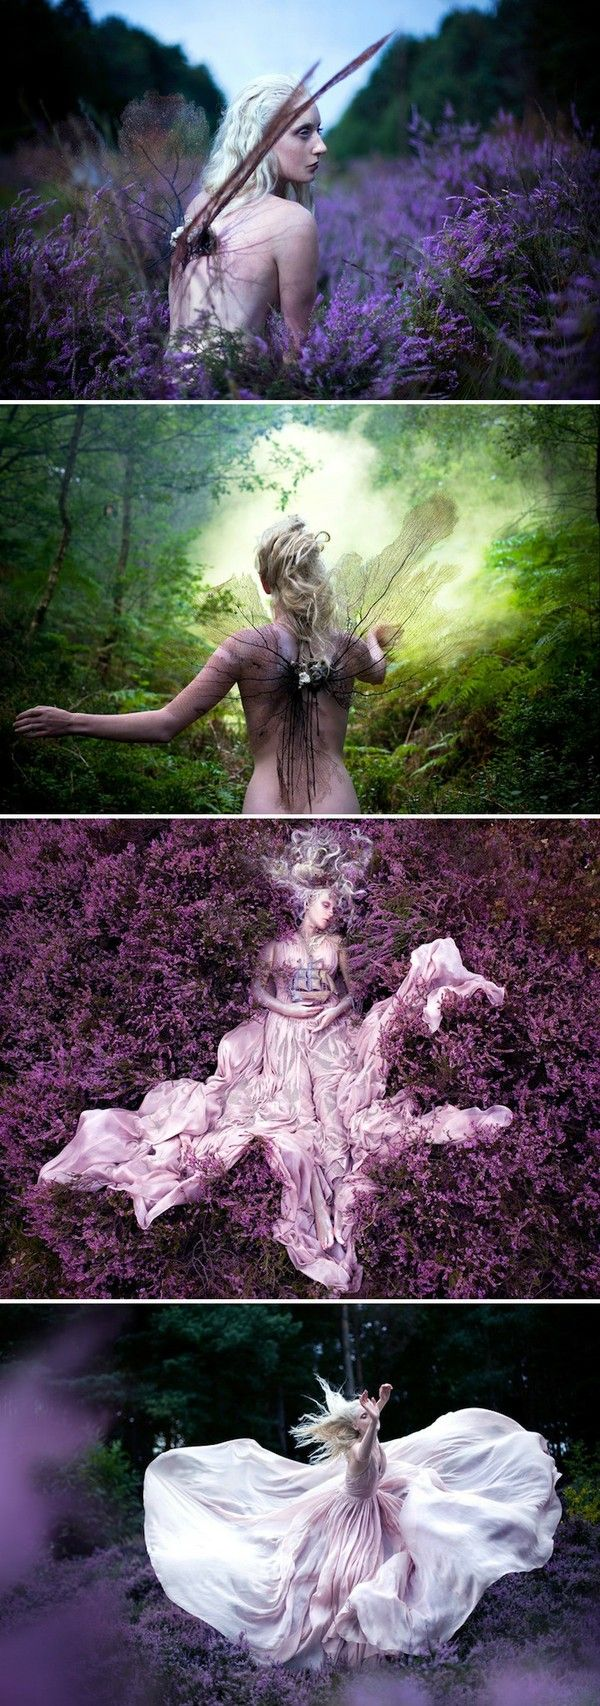 https://photography-classes-workshops.blogspot.com/ #Photography FAIRY By Kirsty Mitchell- I have a new favorite photographer!